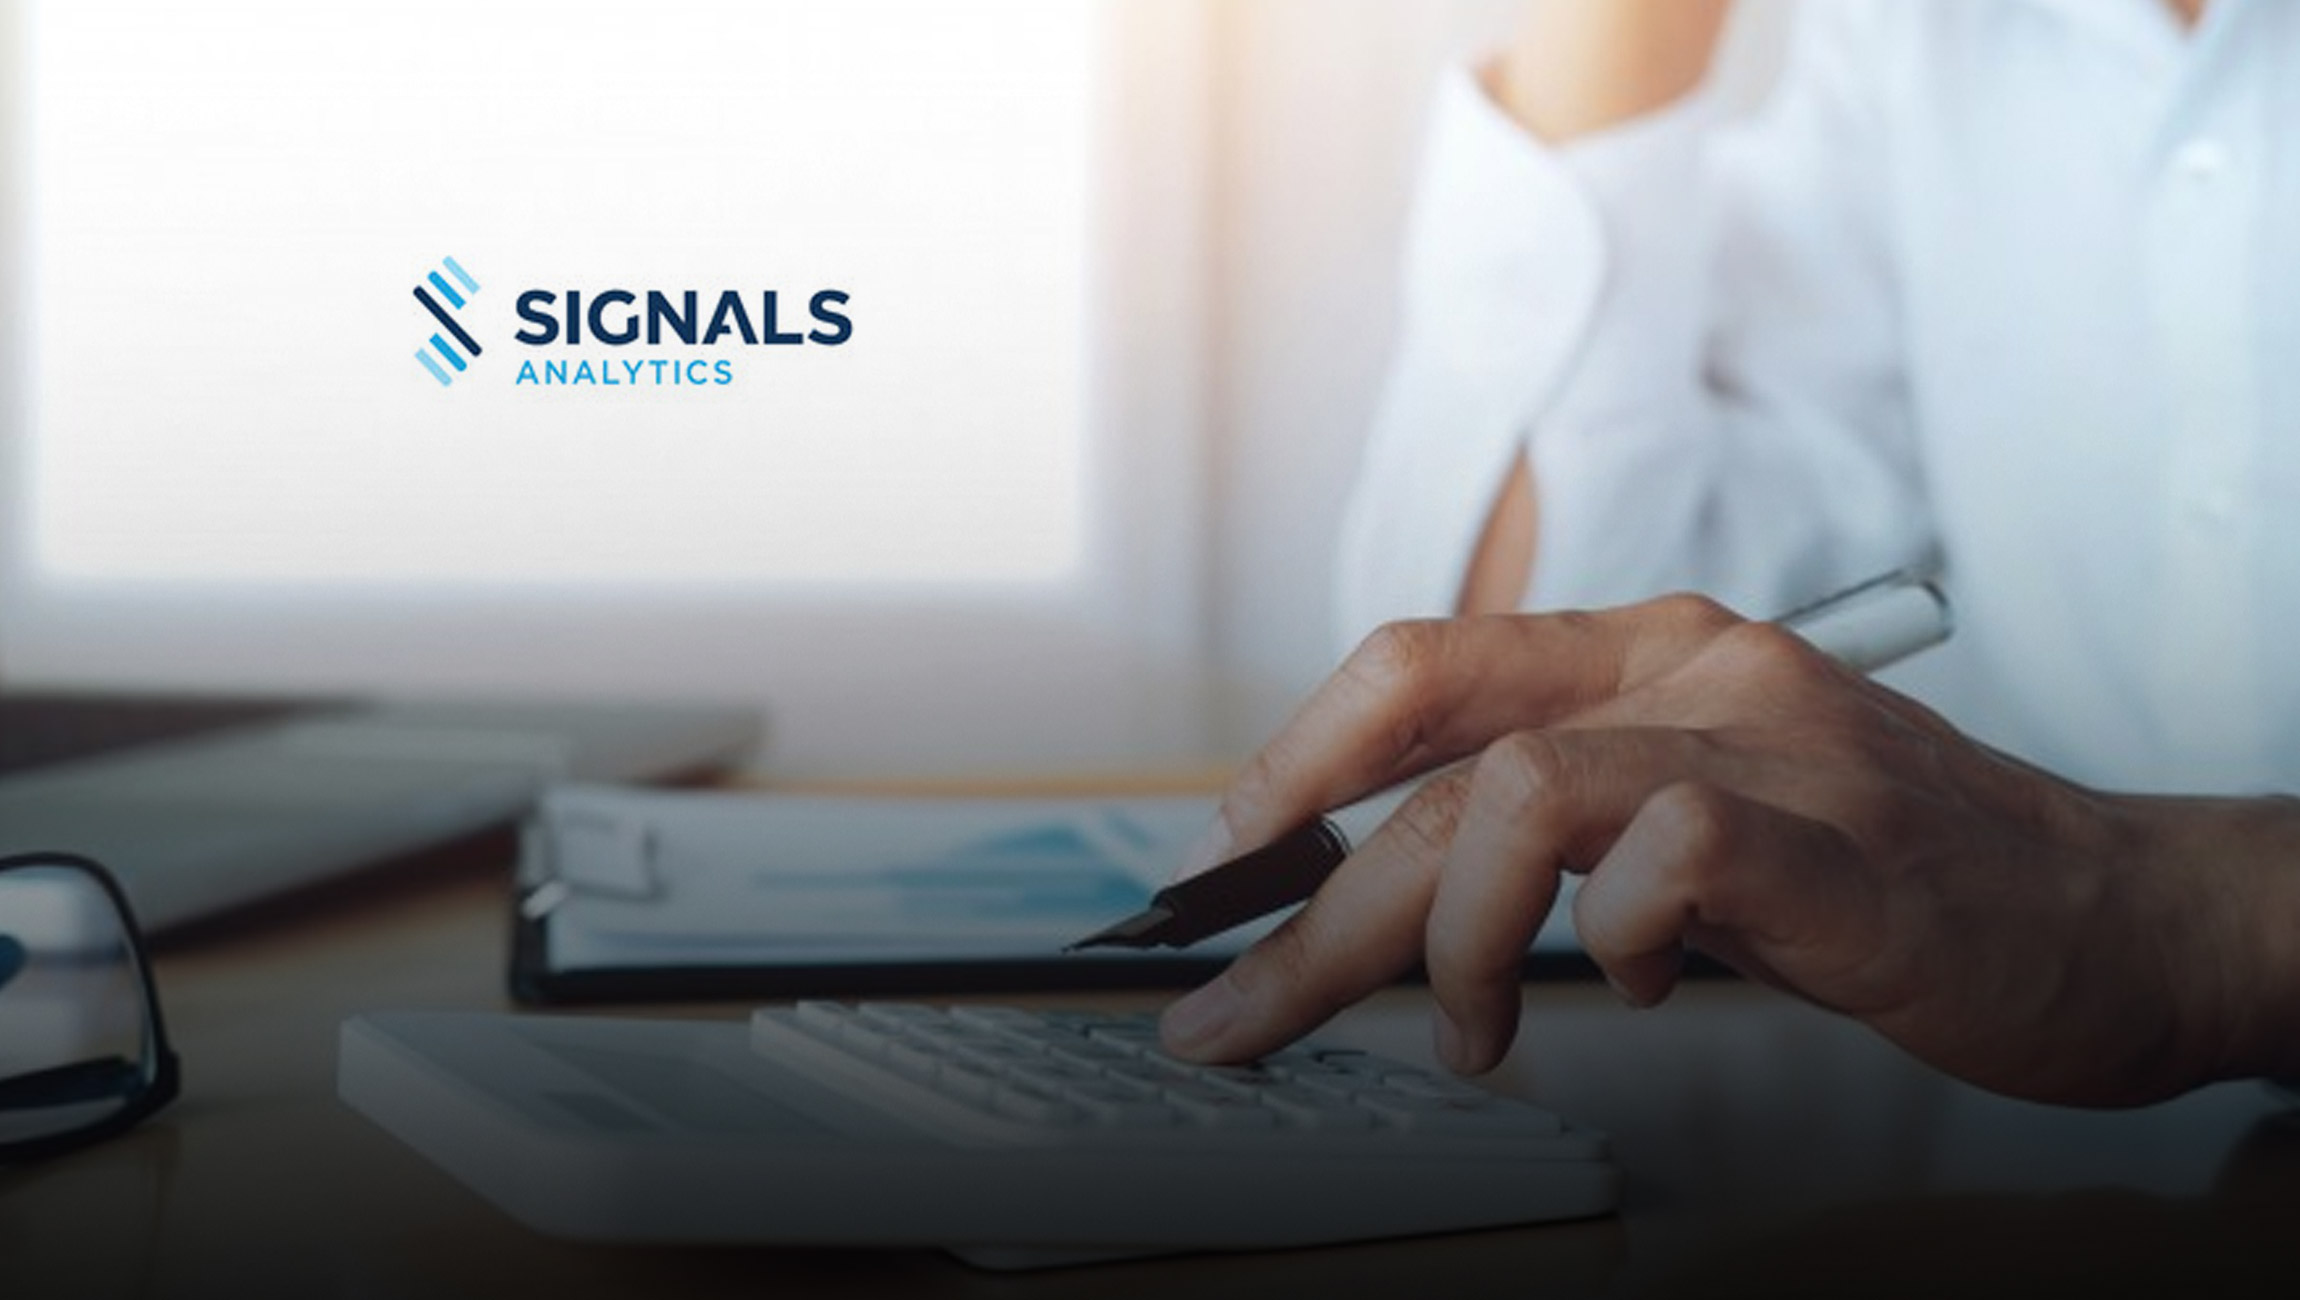 Signals Analytics Launches AI-Driven Consumer Intelligence Platform for Apparel Brands Seeking a Pandemic Rebound